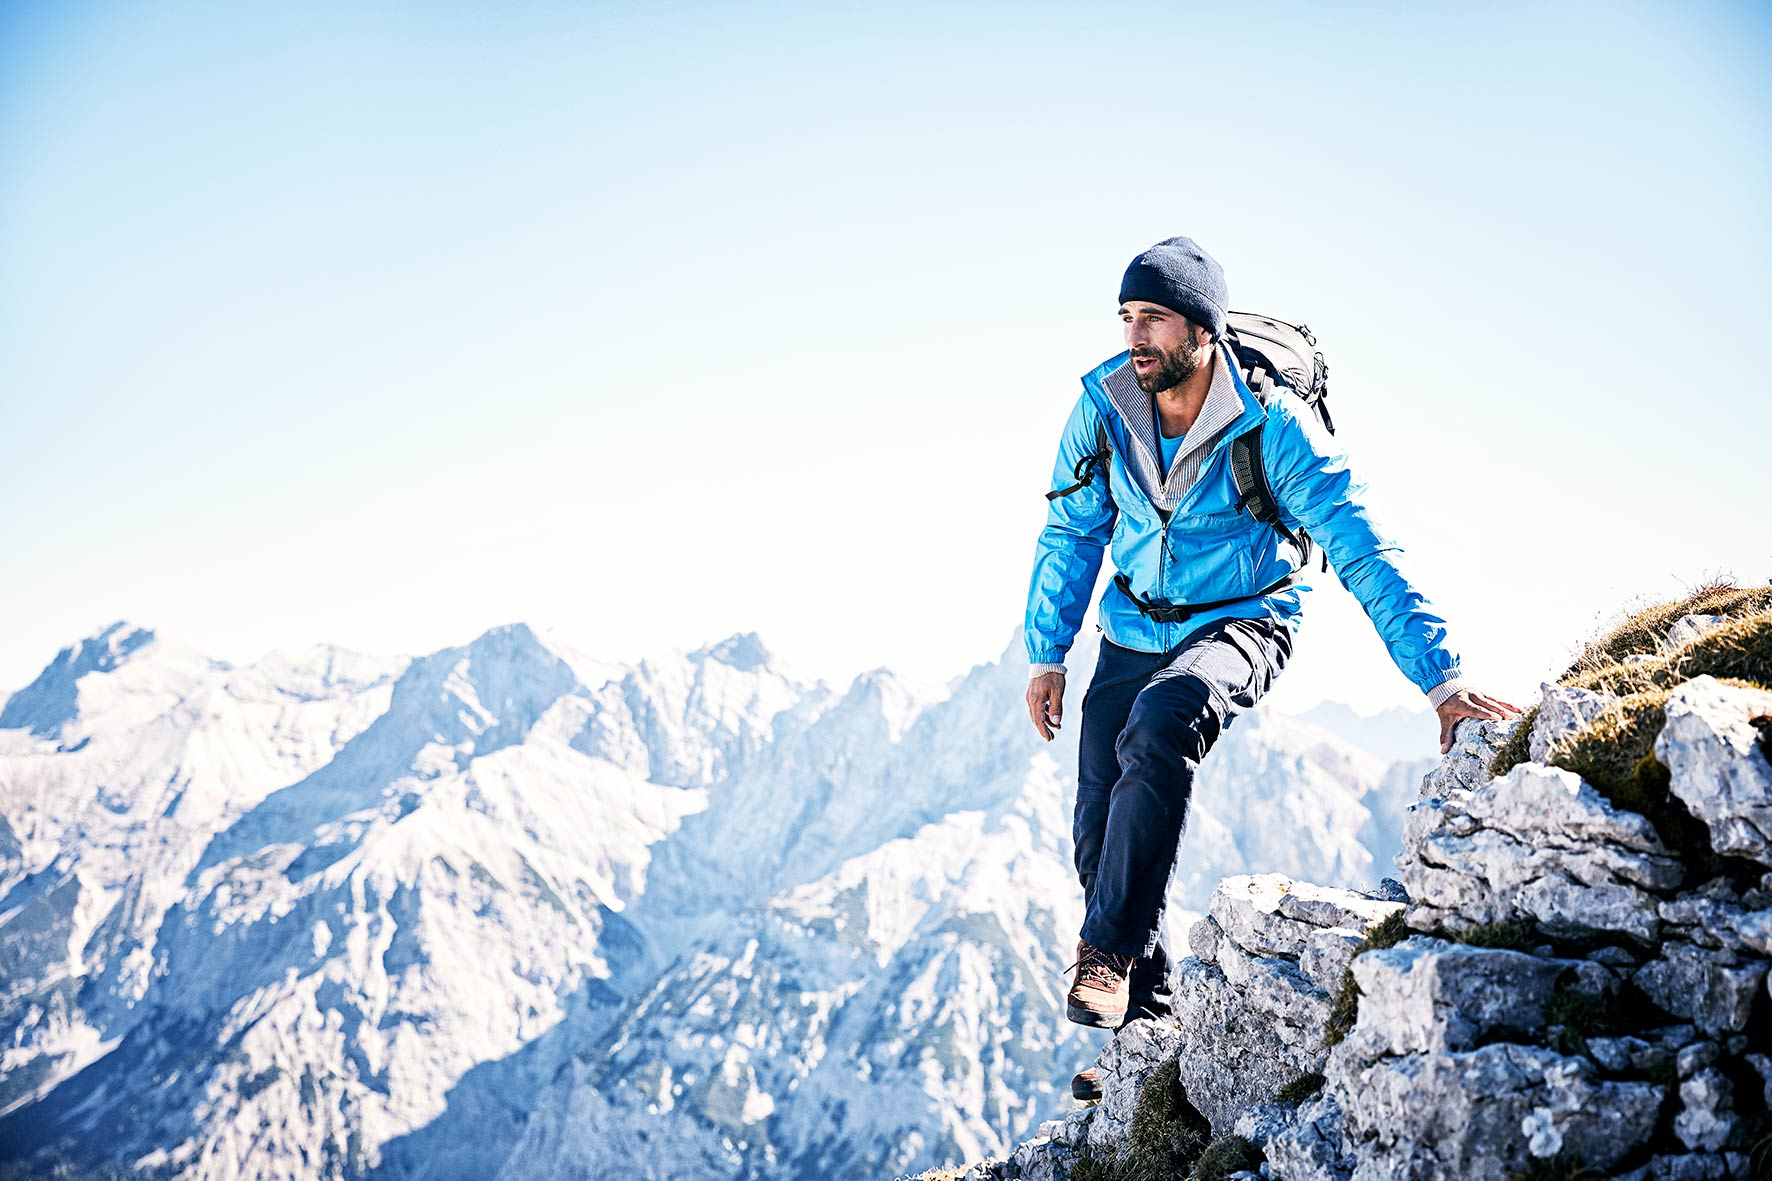 Sports pic showing a man hiking in the alps